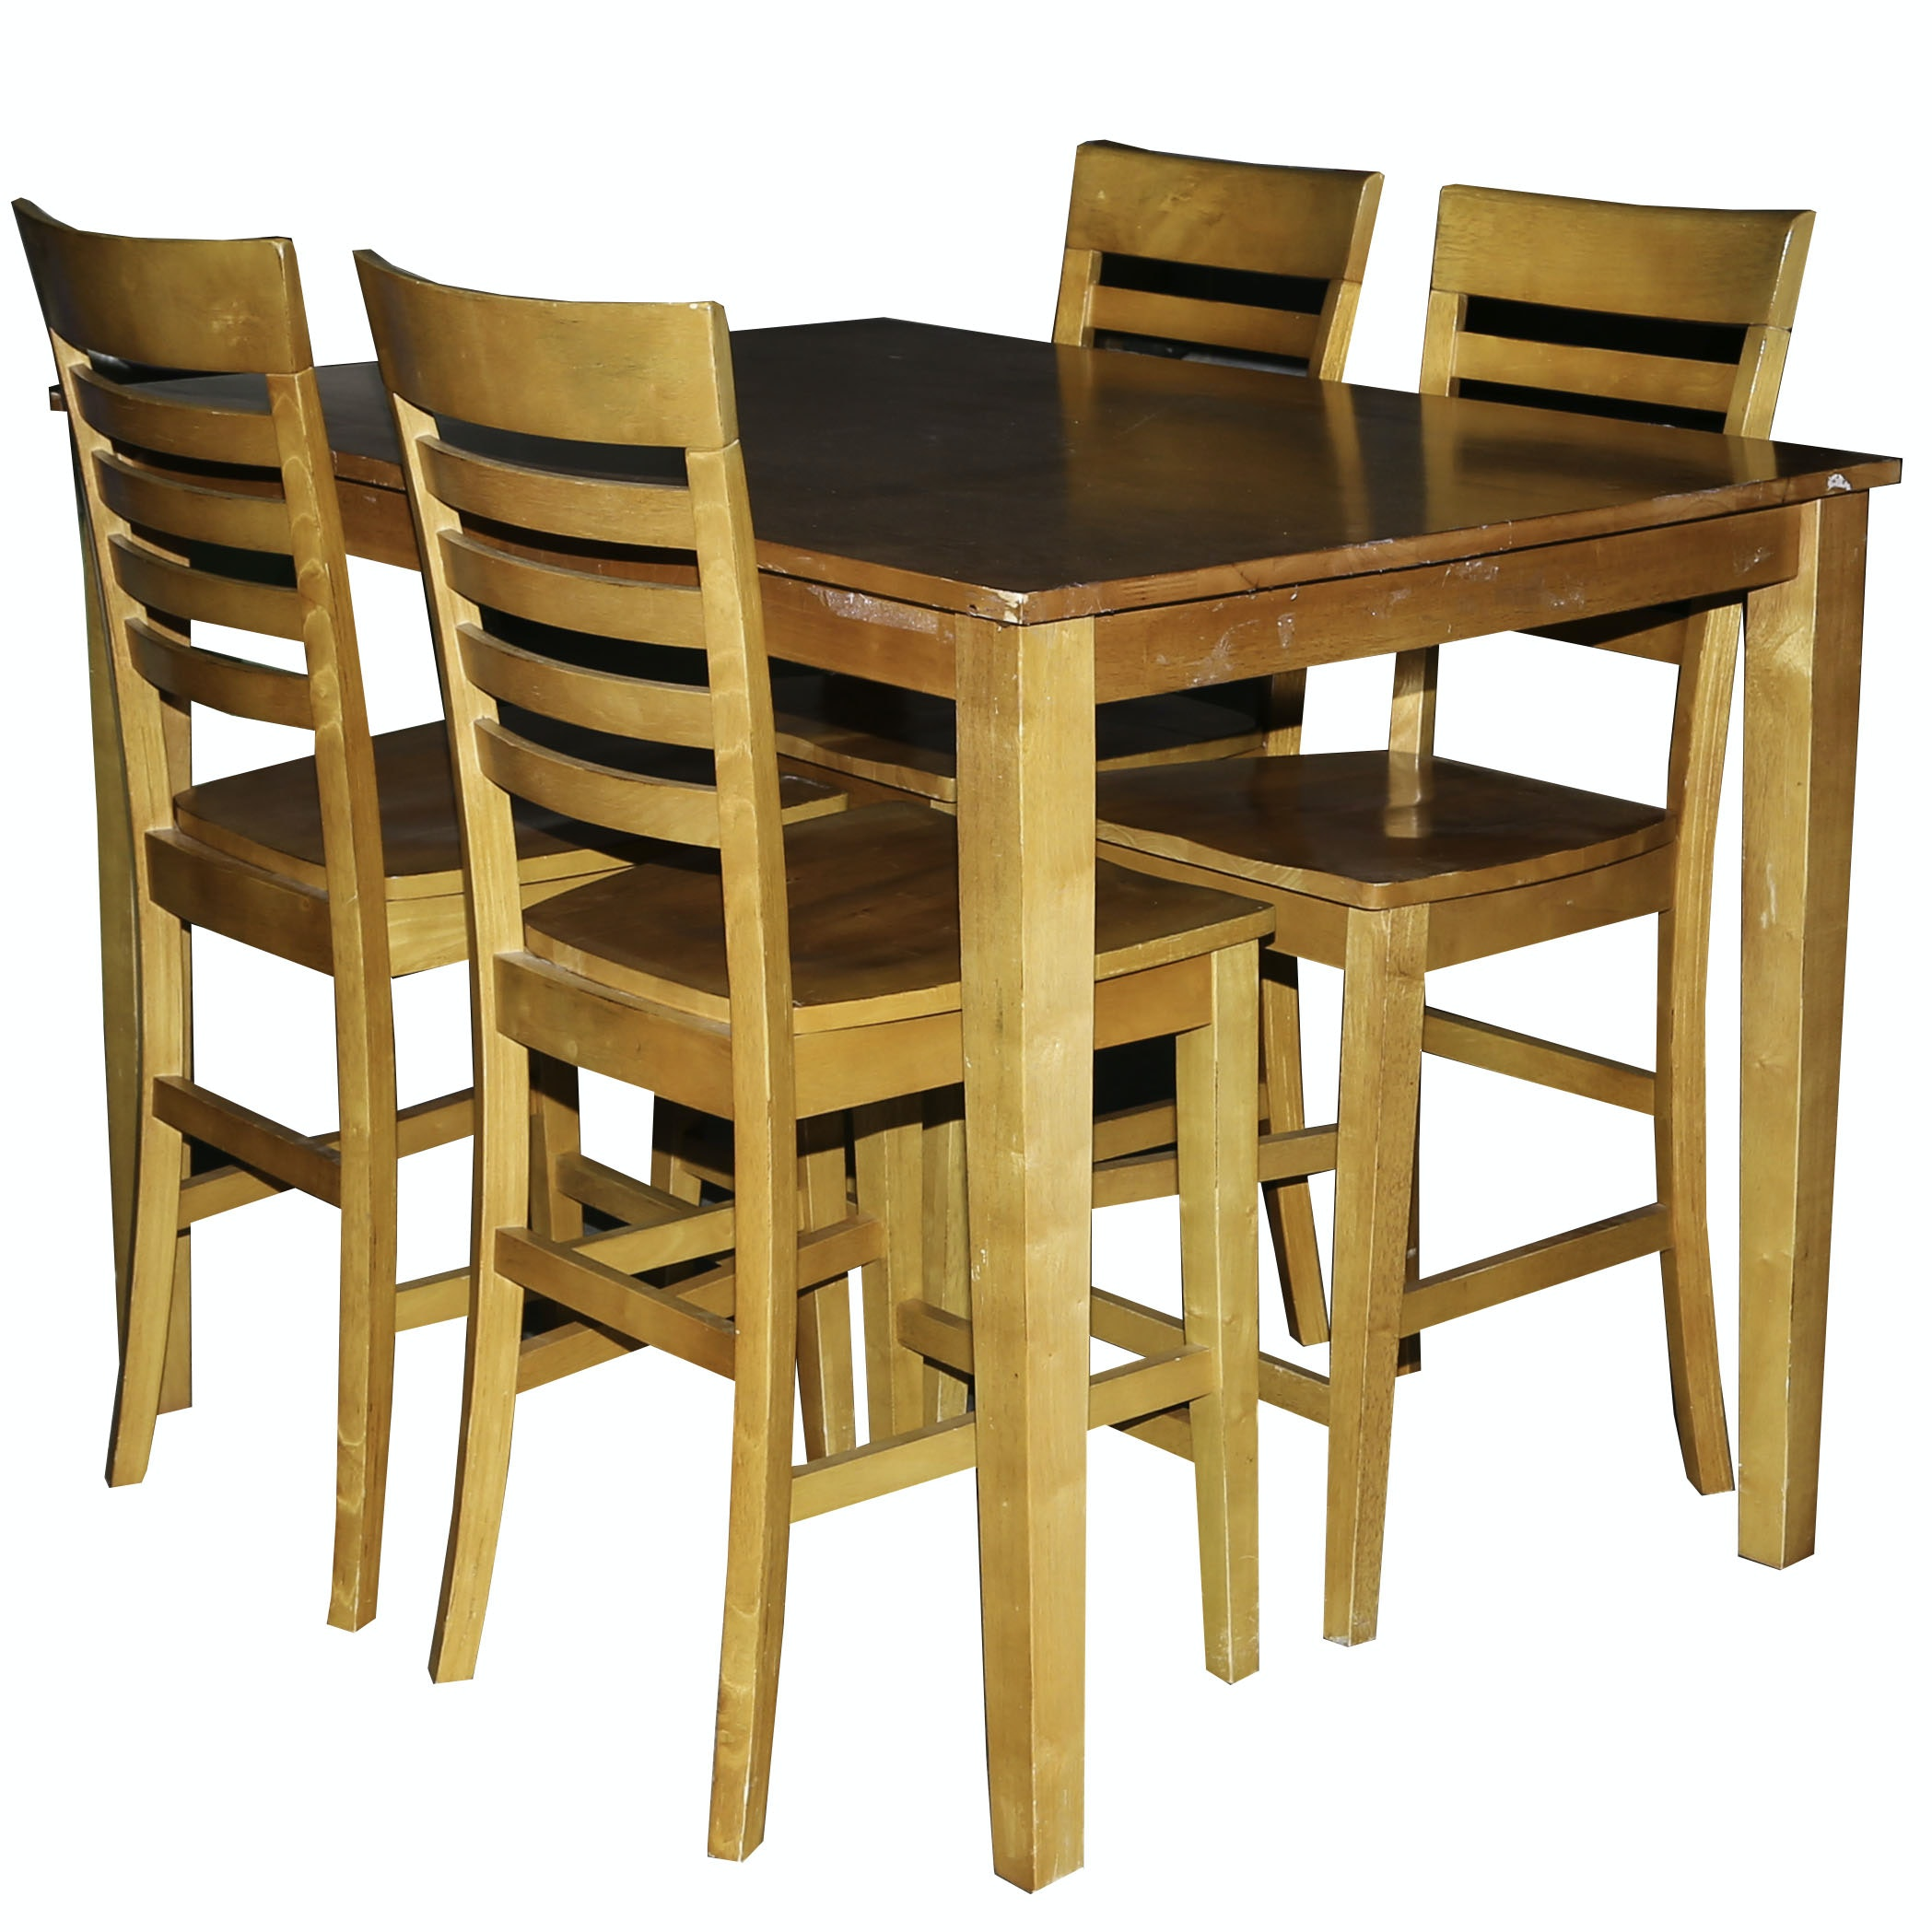 Contemporary Pub Style Table and Chairs